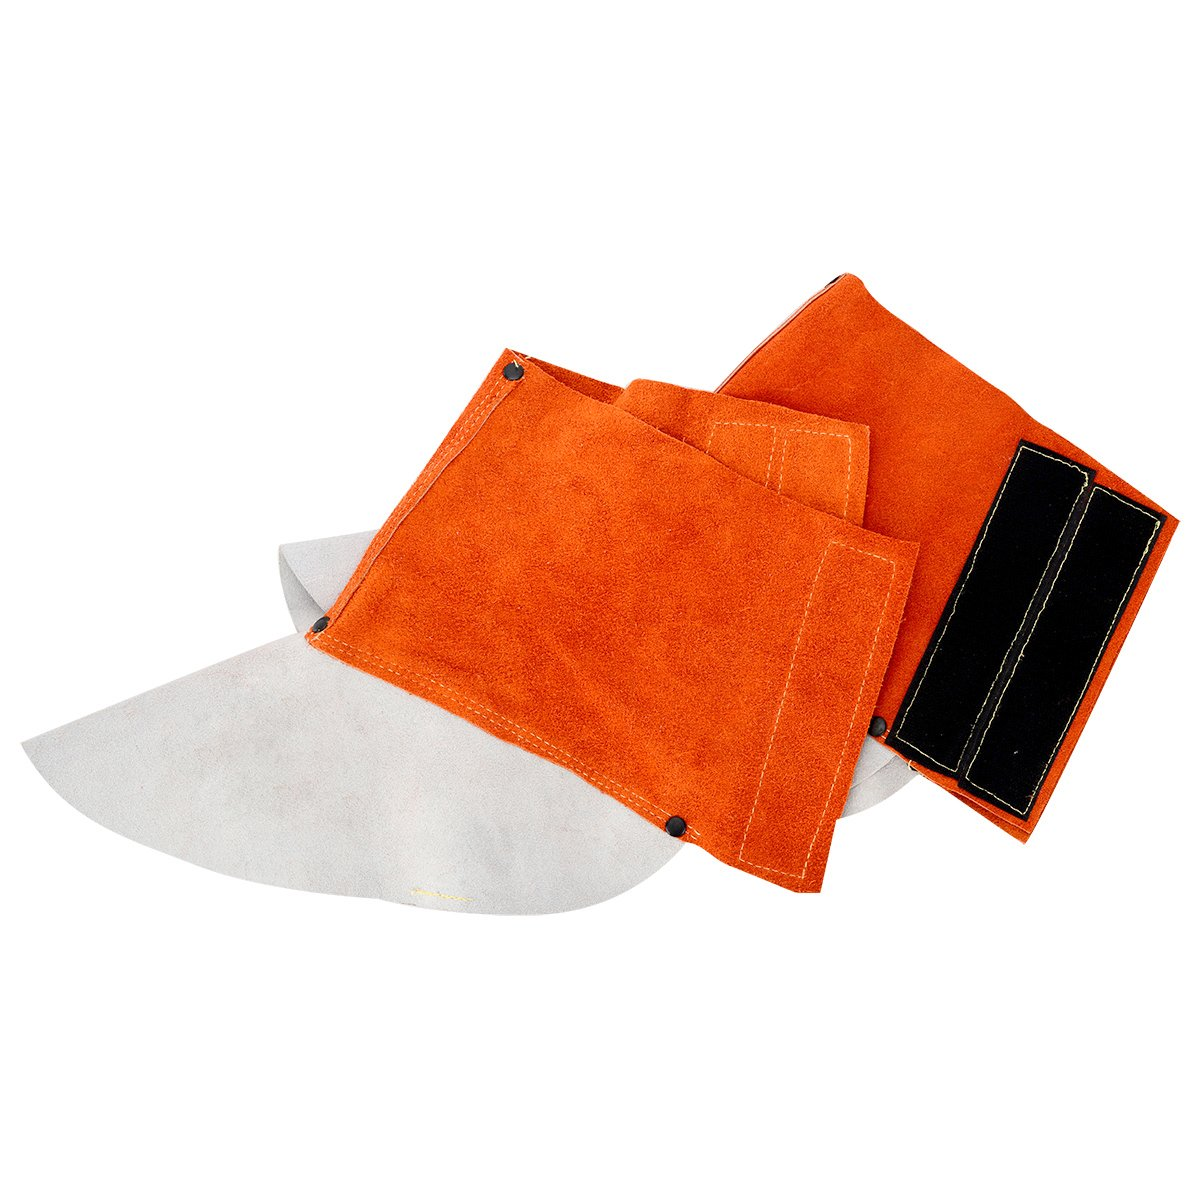 Heat and Abrasion Resistant Welding Boot Covers Shoes Protectors Welding Gaiters 1 Pair QeeLink Leather Welding Spats